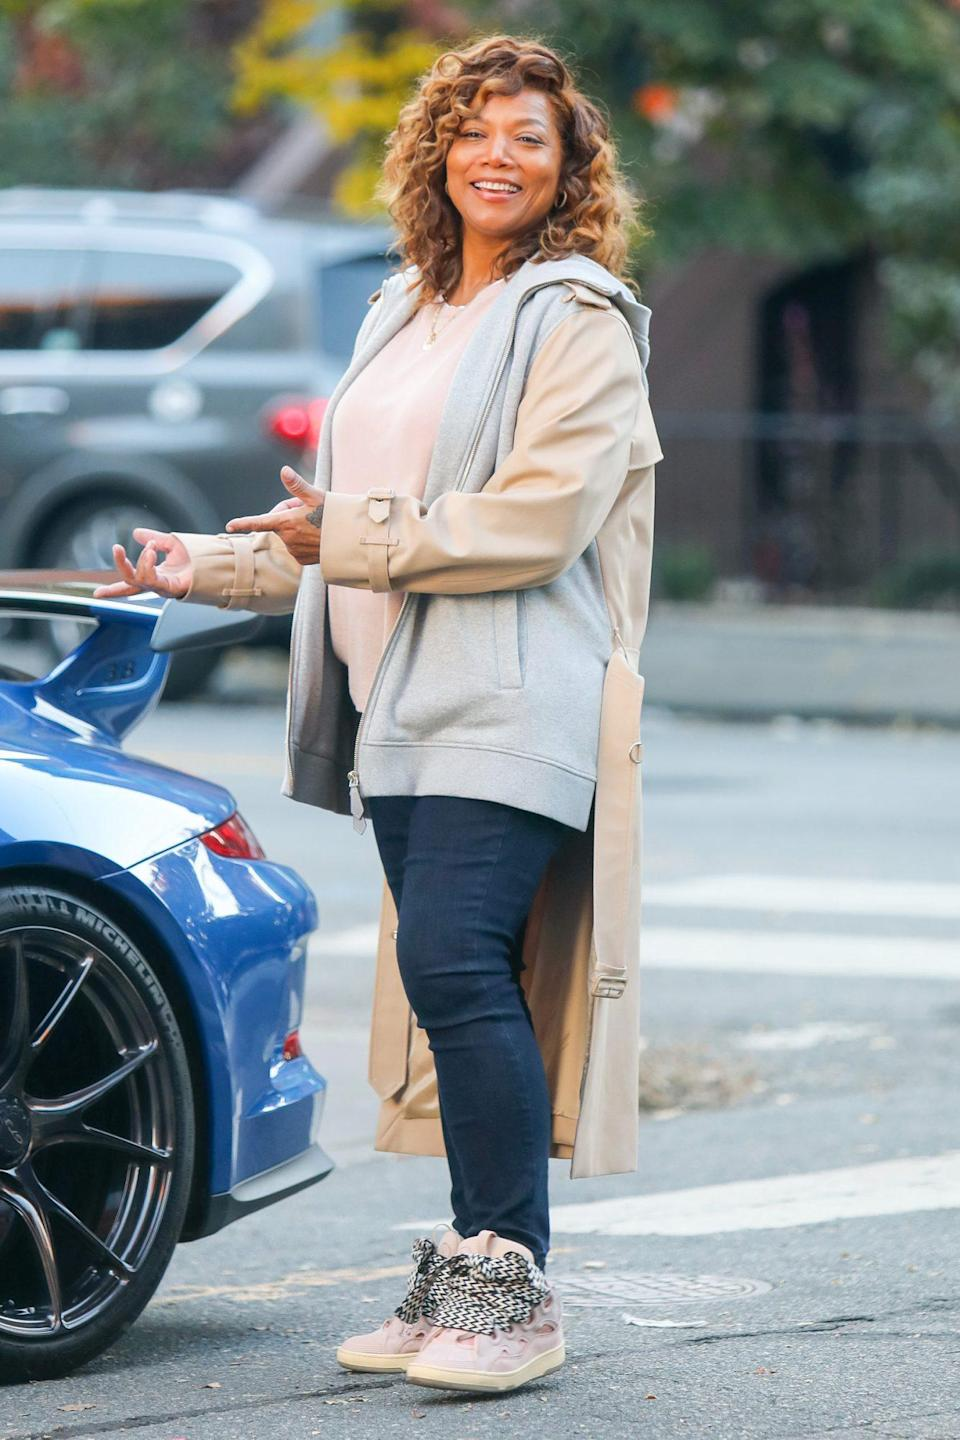 <p>Queen Latifah is all smiles on the set of <em>The Equalizer</em> TV series on Monday in N.Y.C.</p>